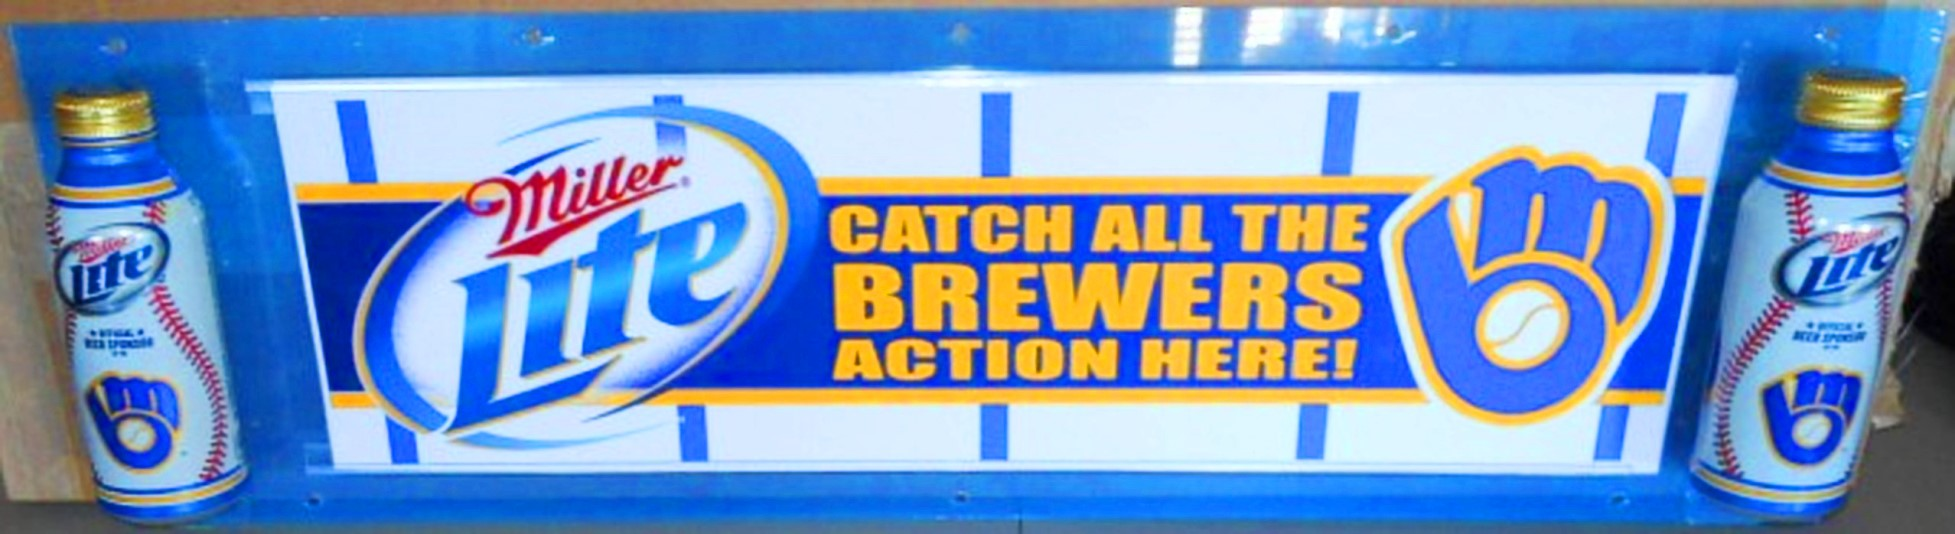 Miller_Brewers_Sign_9x34_c63c__10-2012.v1.jpg